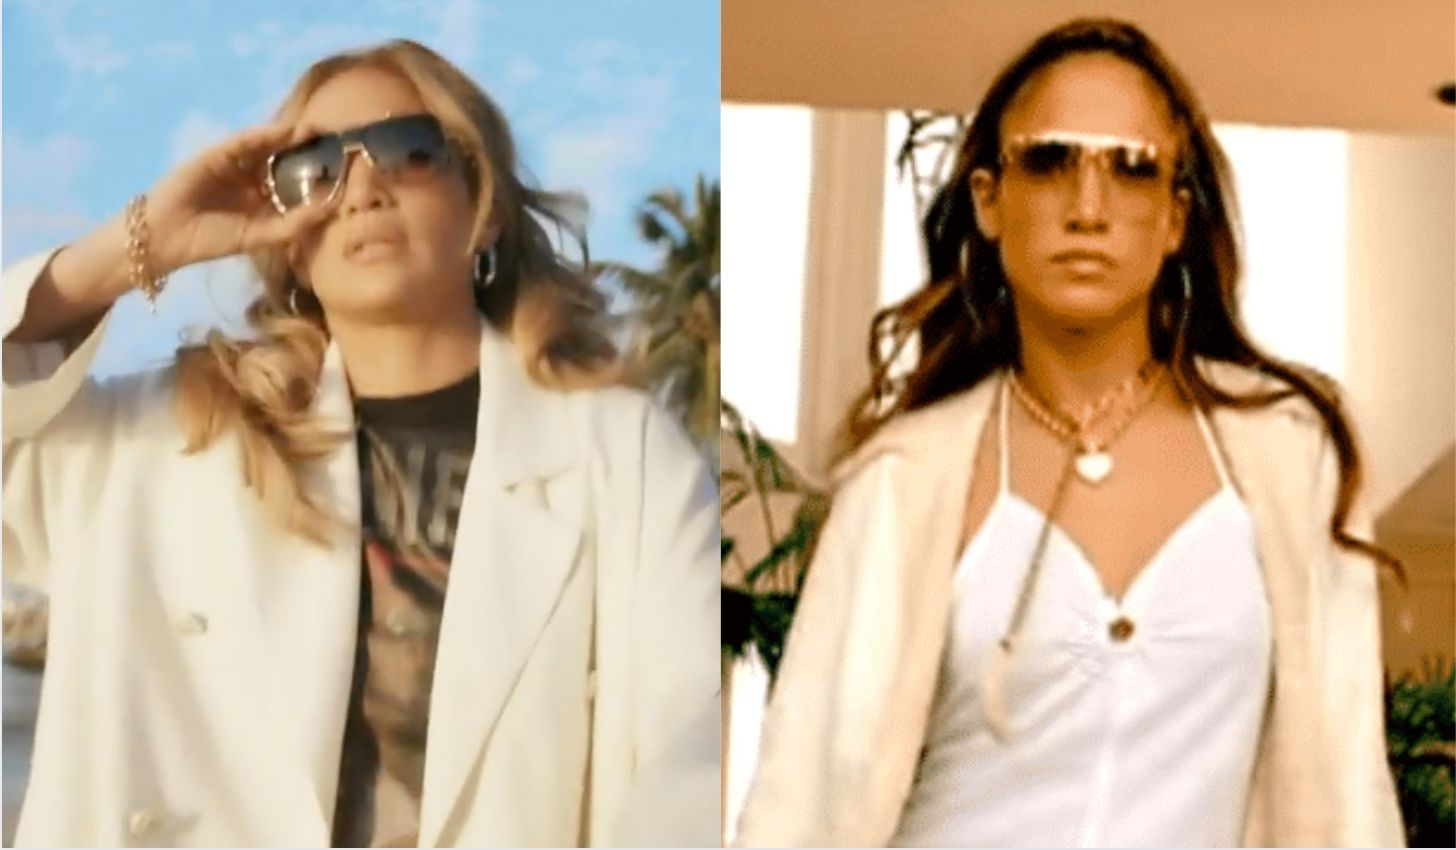 Jennifer lopez recreates 'love don't cost a thing' music video 20 years later